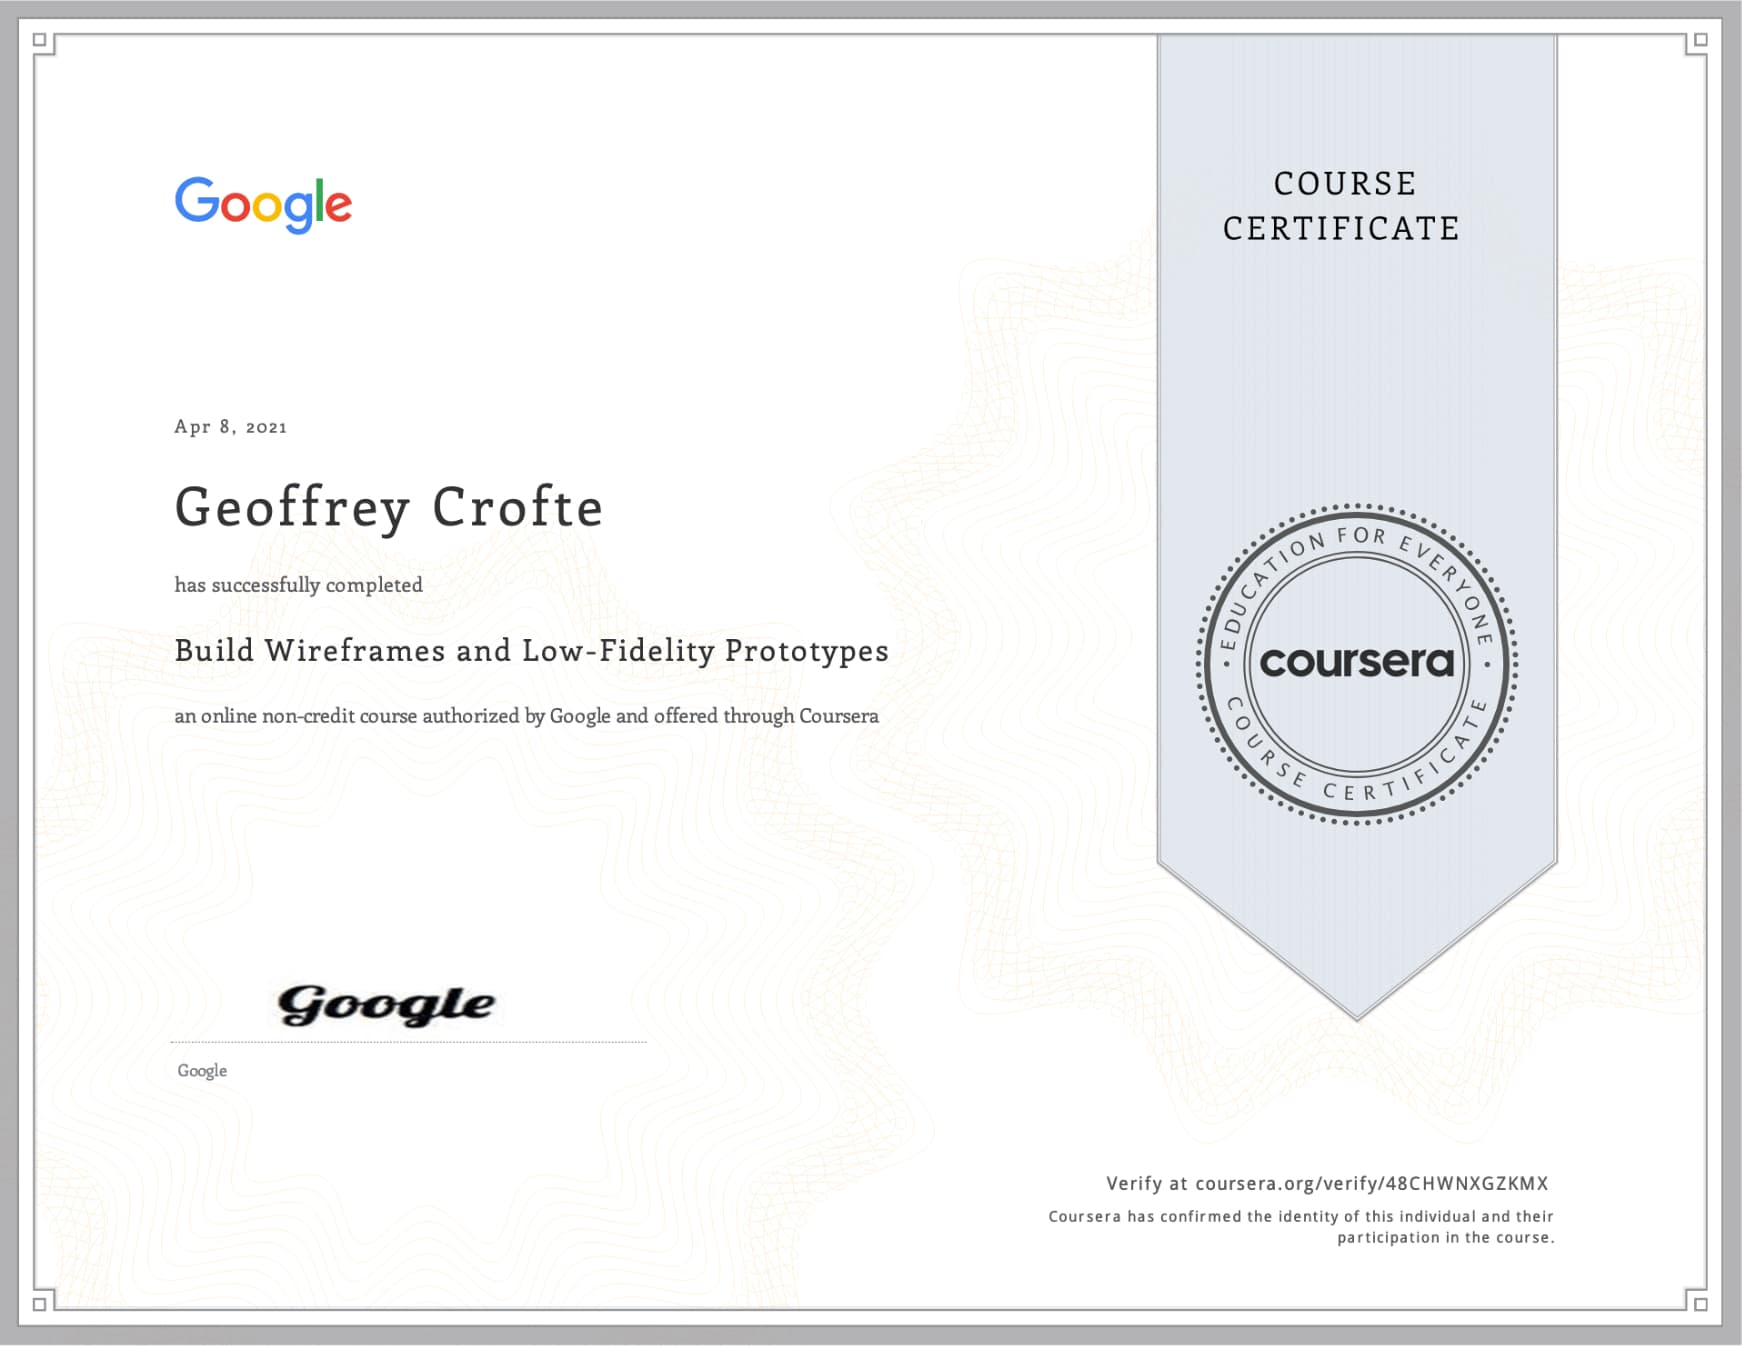 The third Google UX Design Certificate of completion